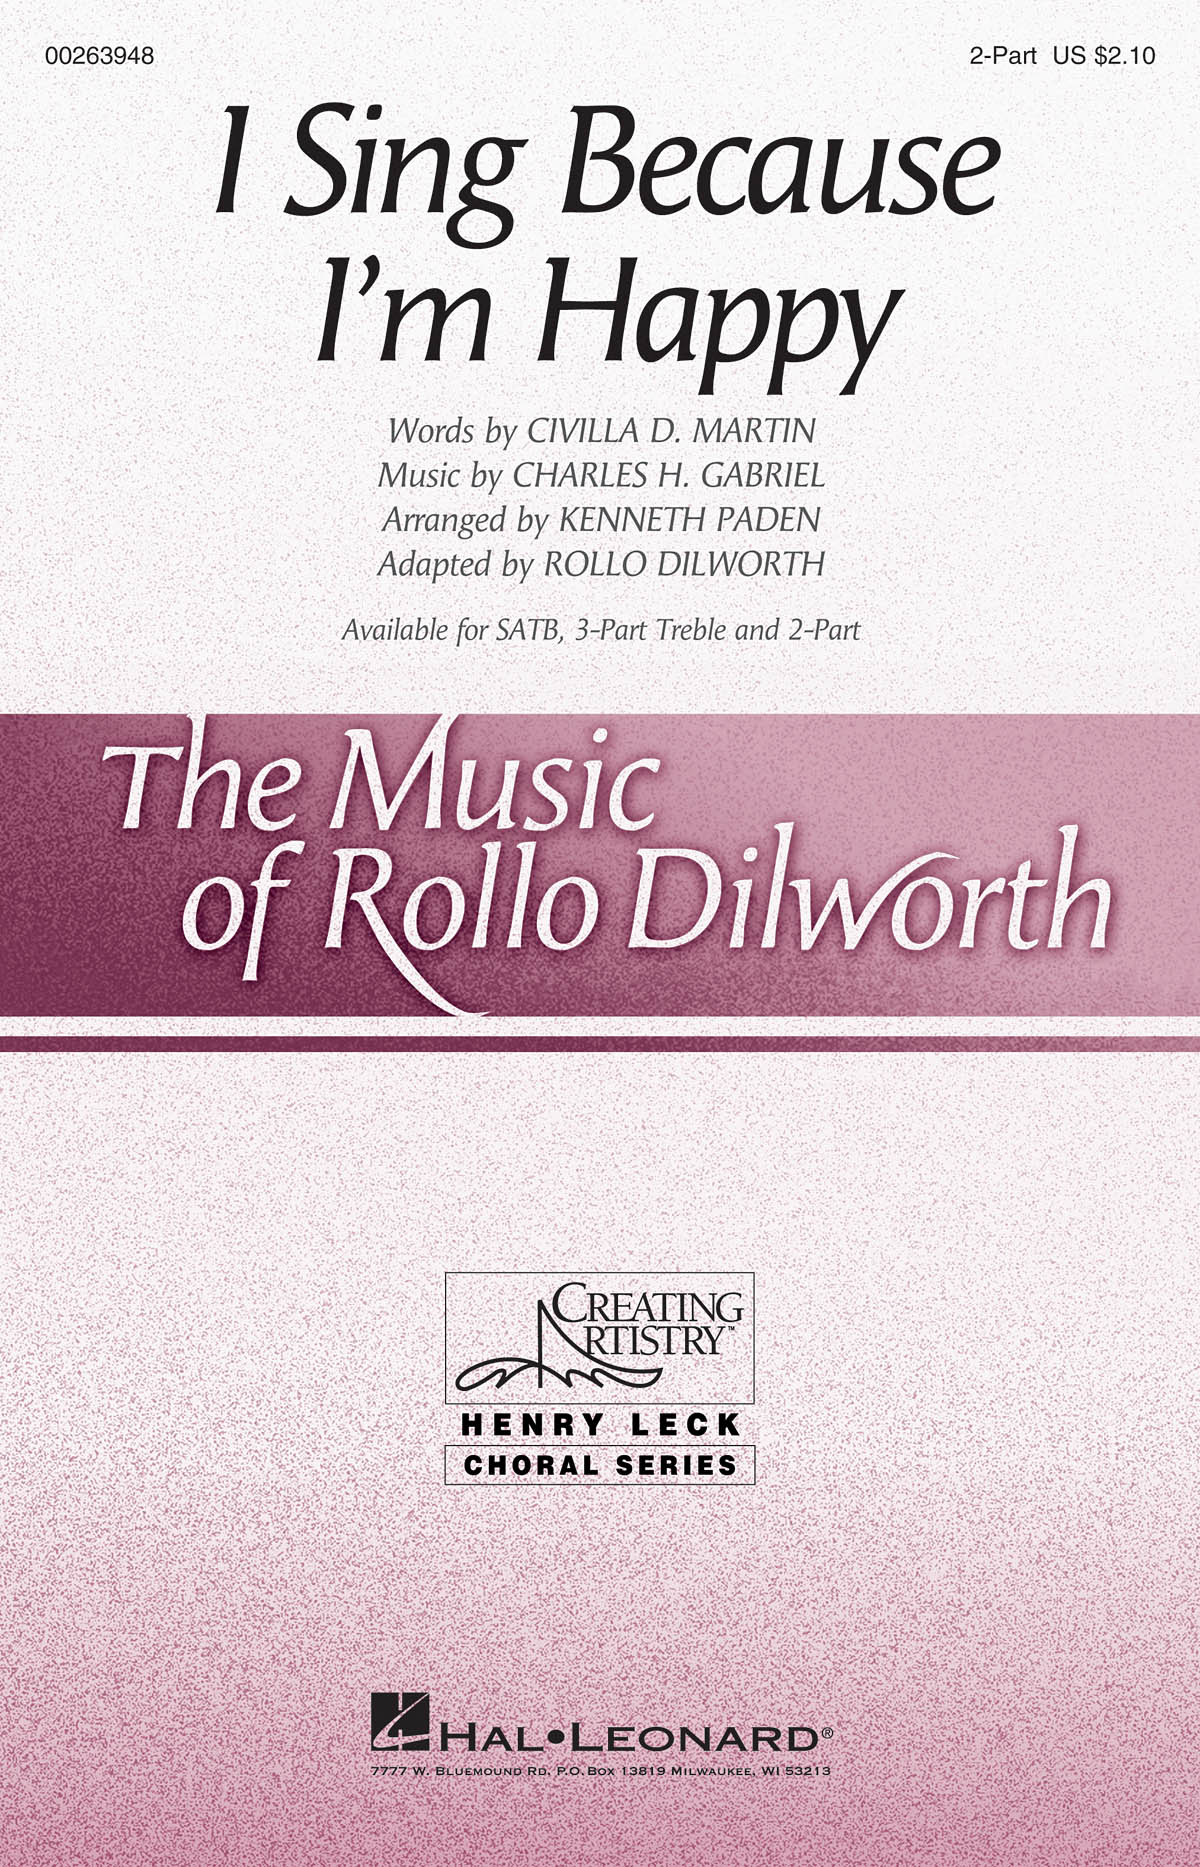 I Sing Because I'm Happy: Mixed Choir and Piano/Organ: Vocal Score